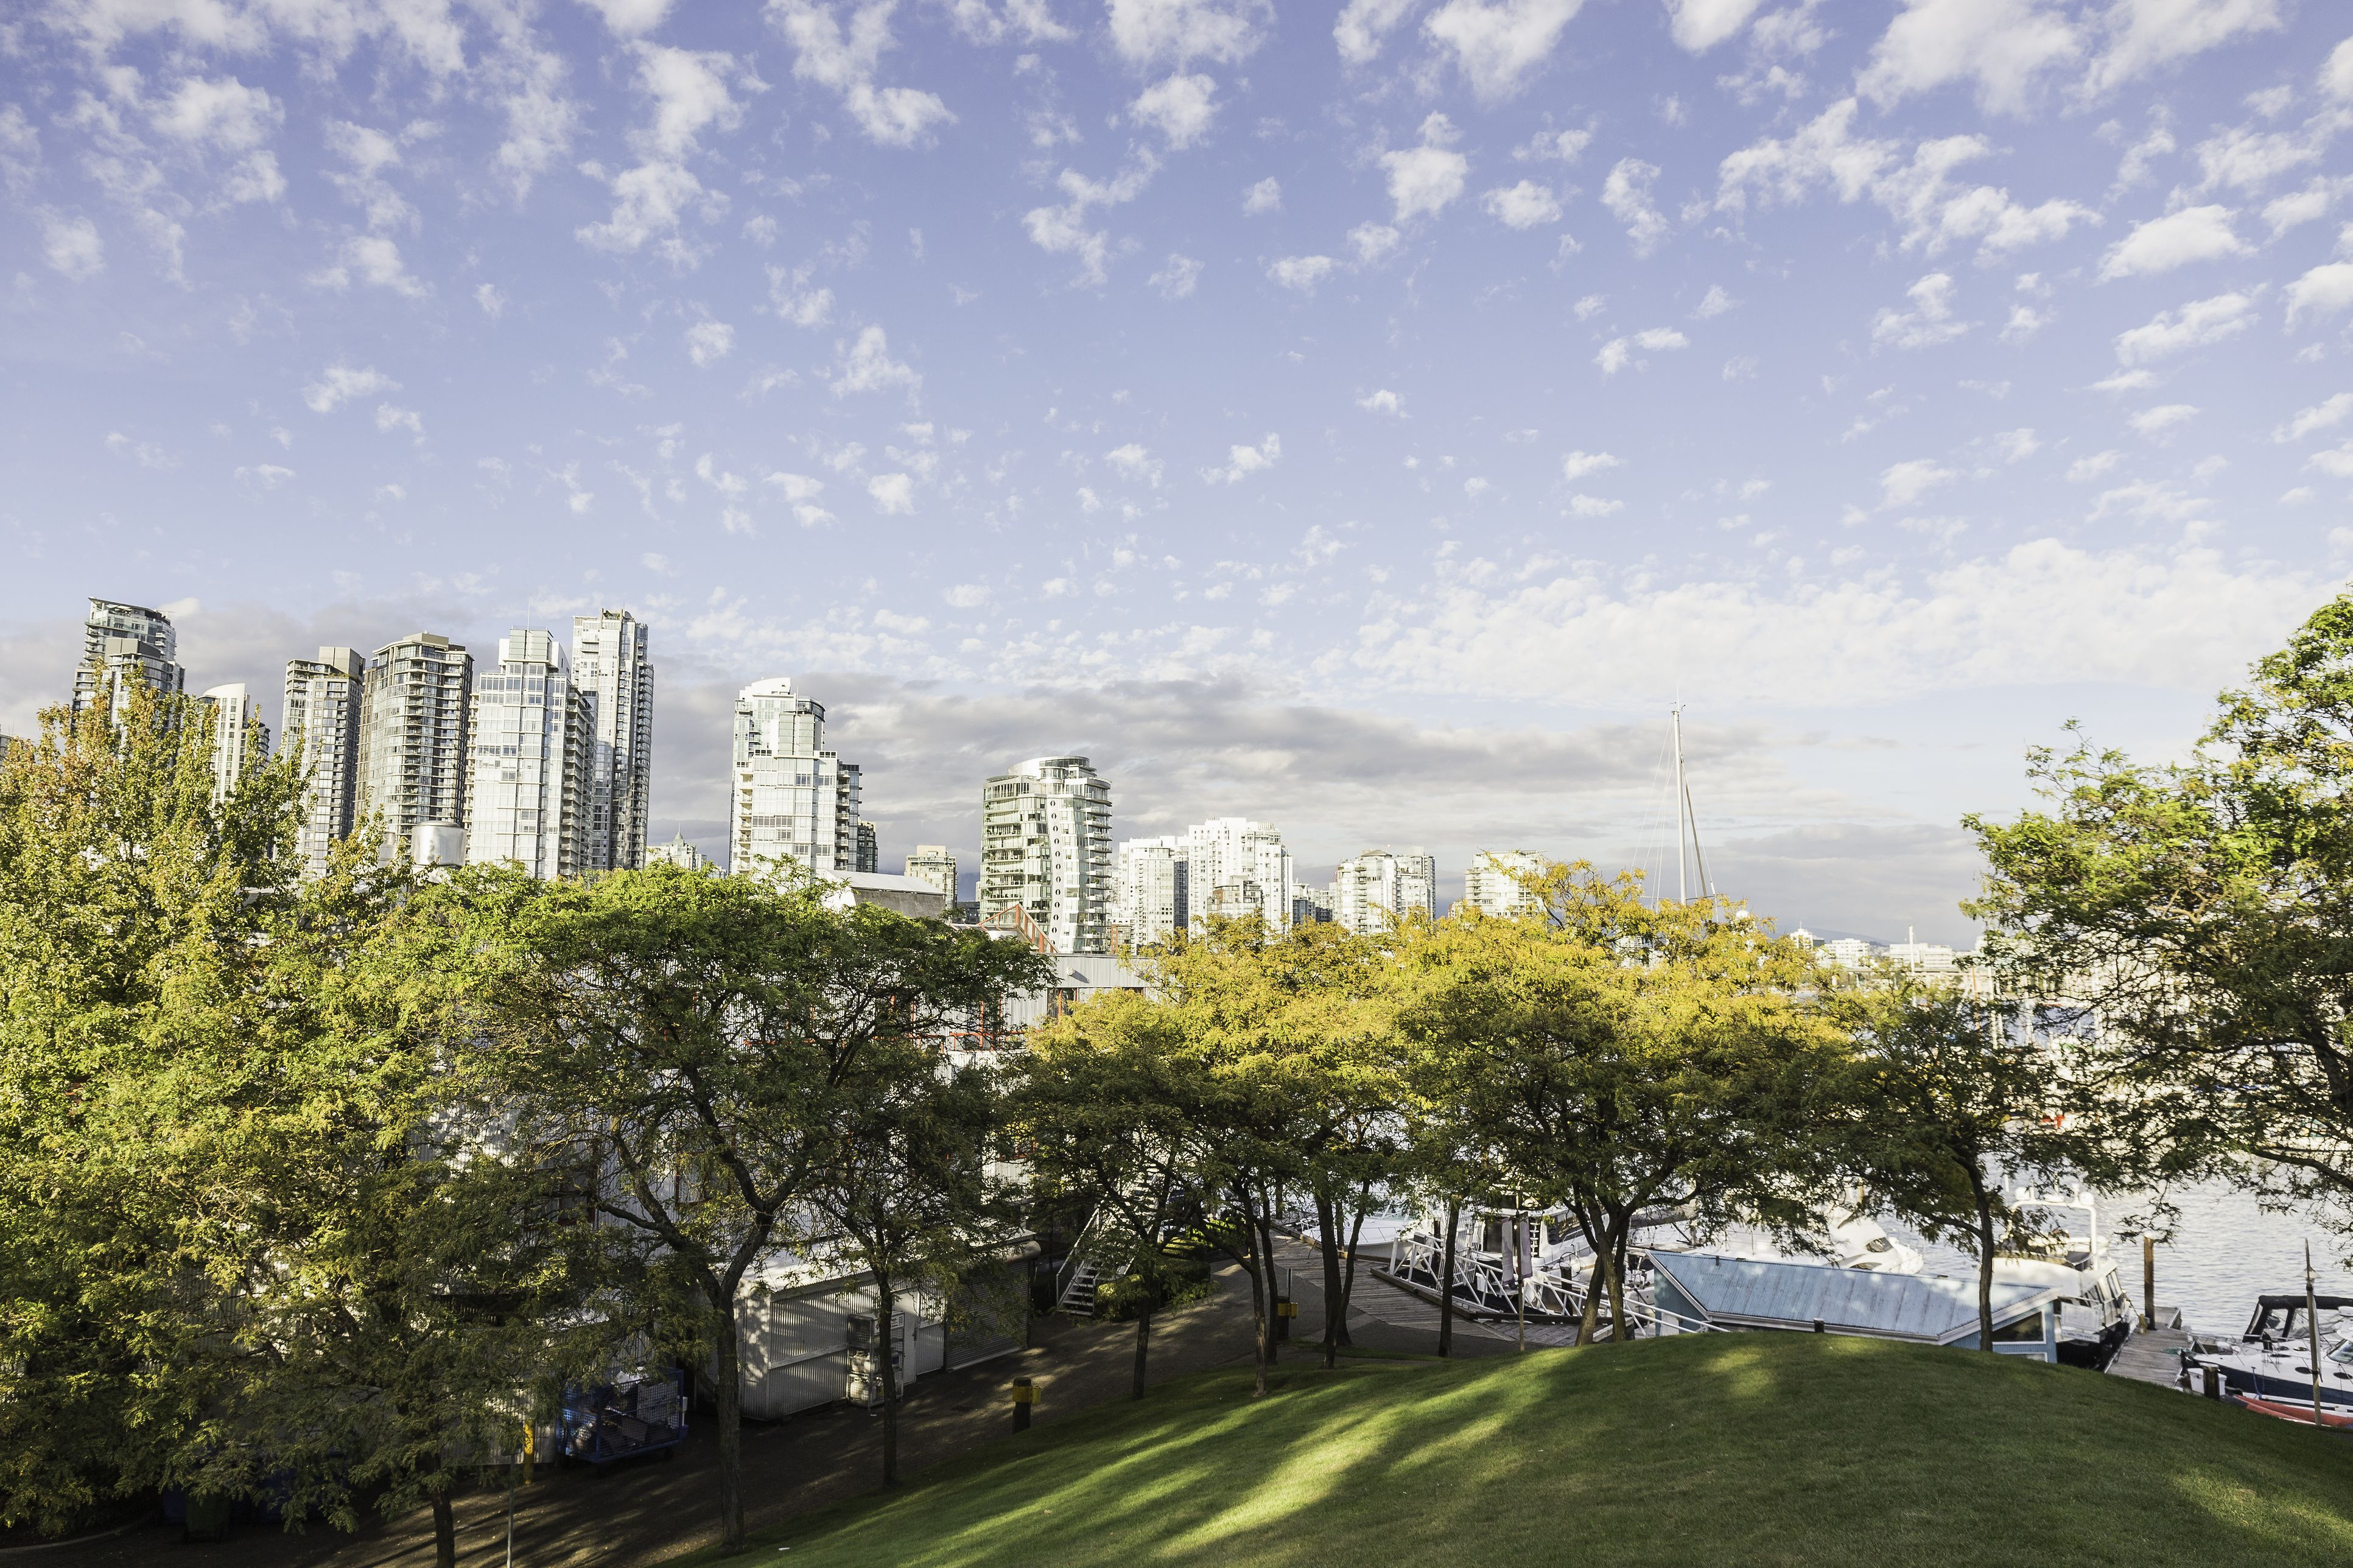 Elevated view of park and city skyline from Granville Island, Vancouver, Canada